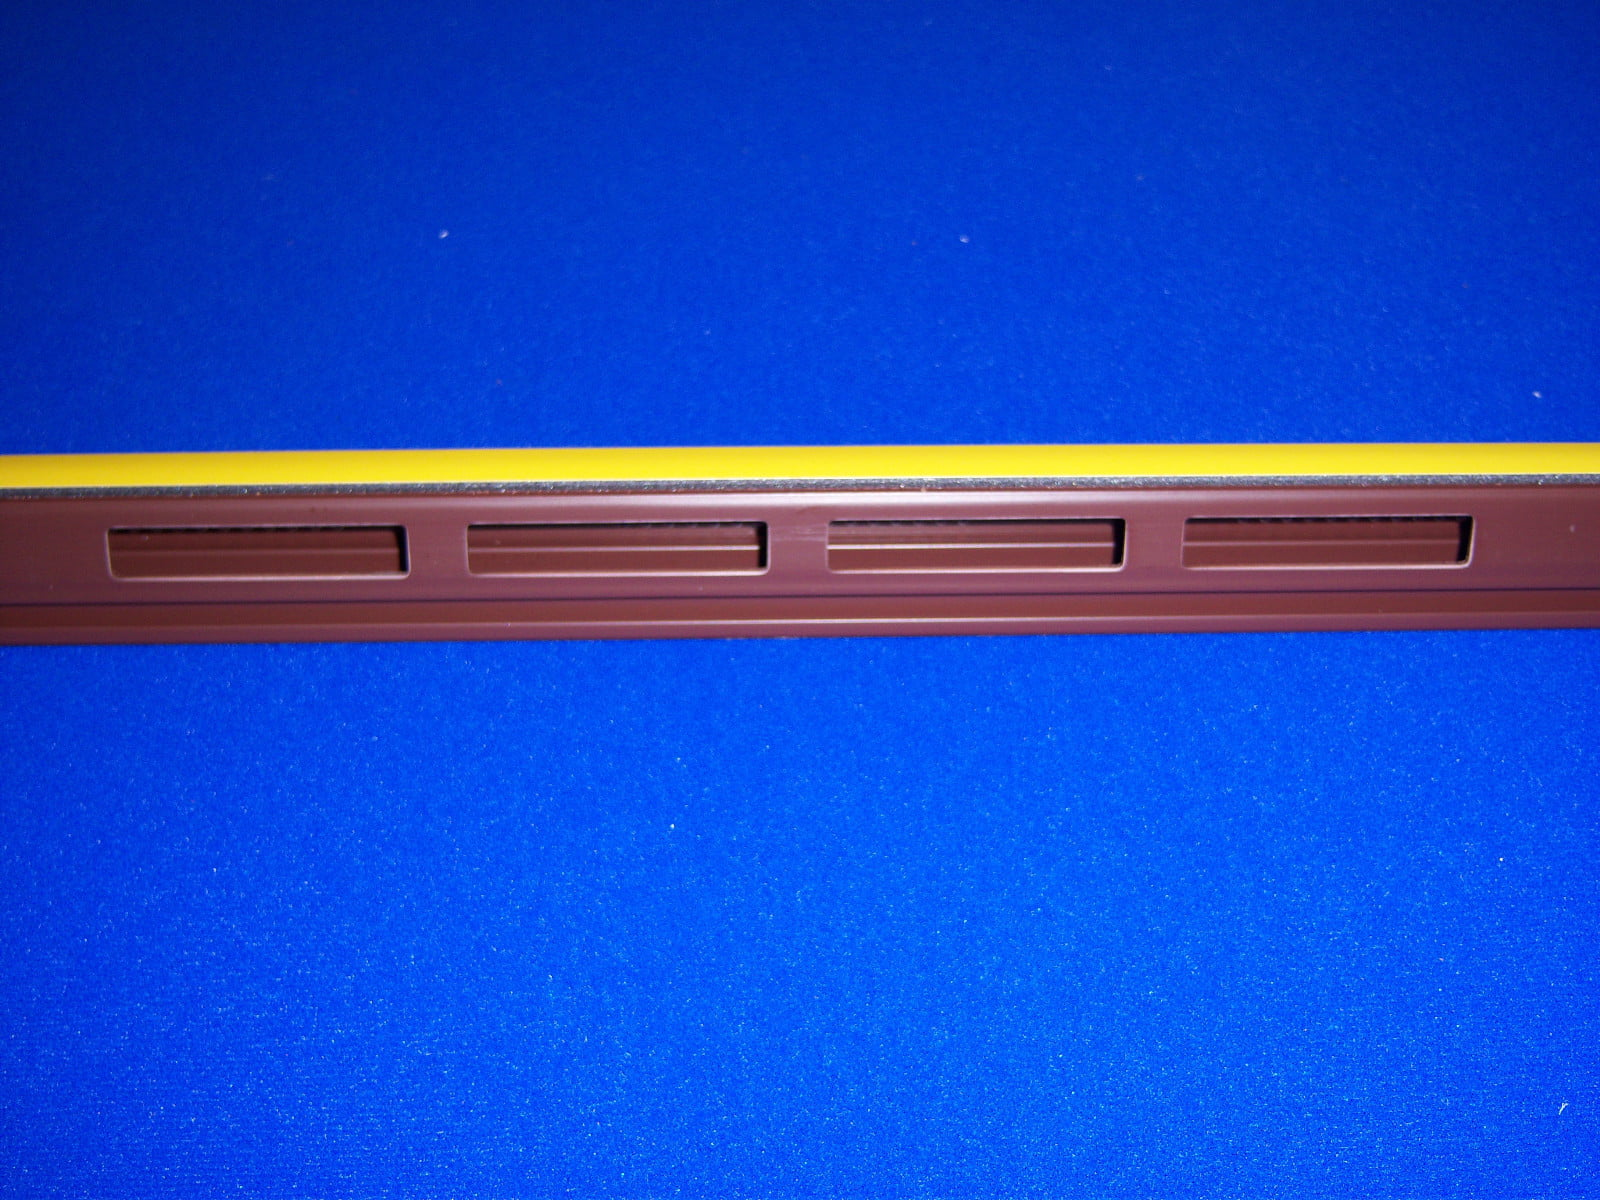 Pst004 Ultraframe Punched Glazing Support Trim 950mm